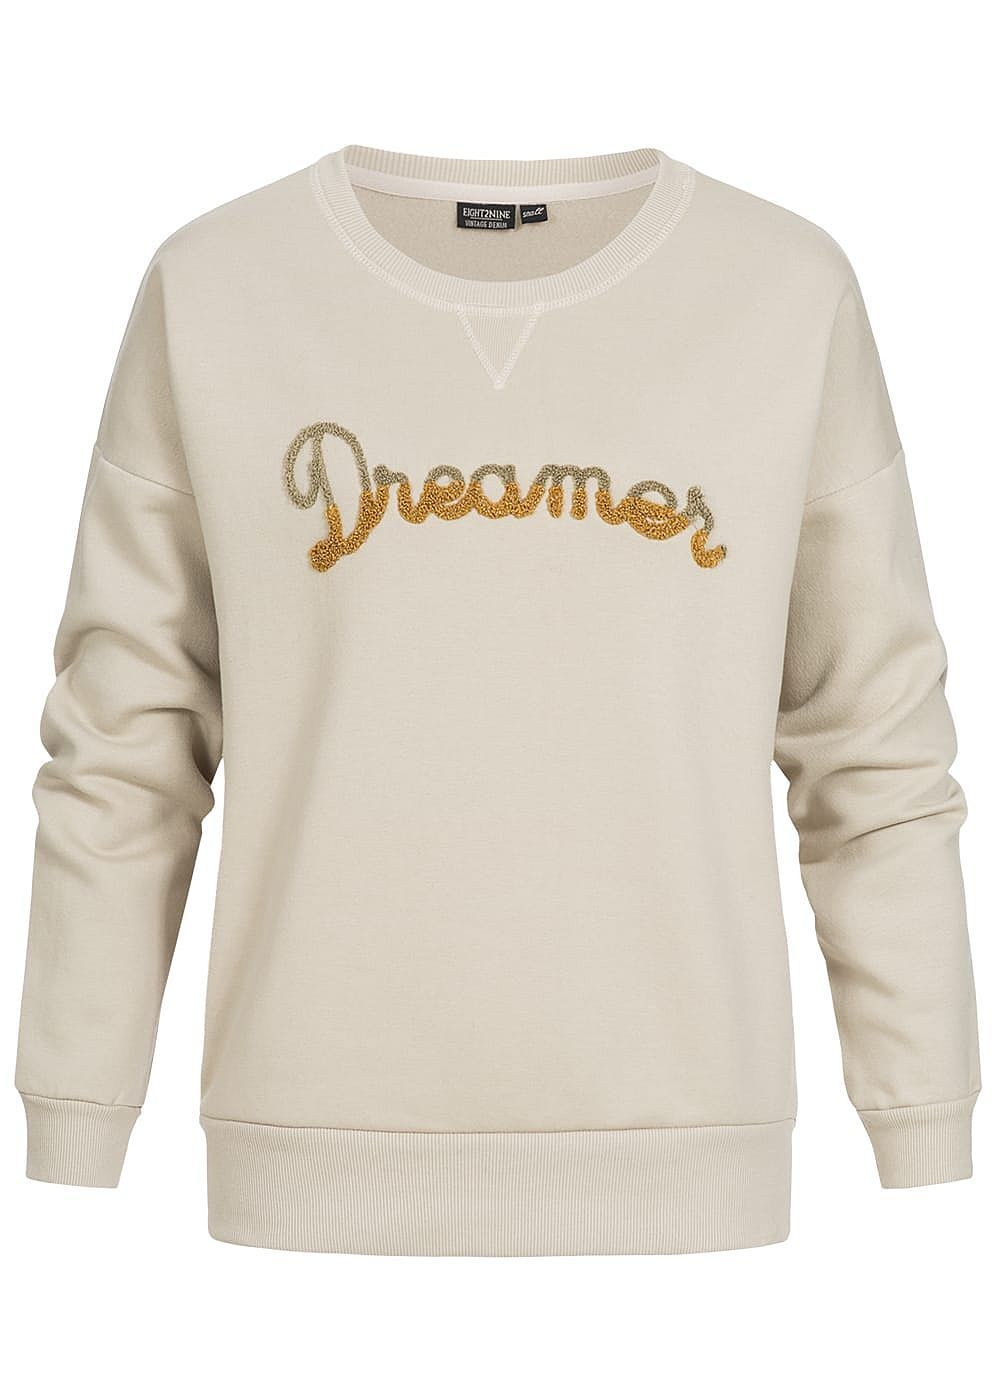 50% OFF B18010130 Damen Eight2Nine Pullover Sweater Dreamer Patch beige gold